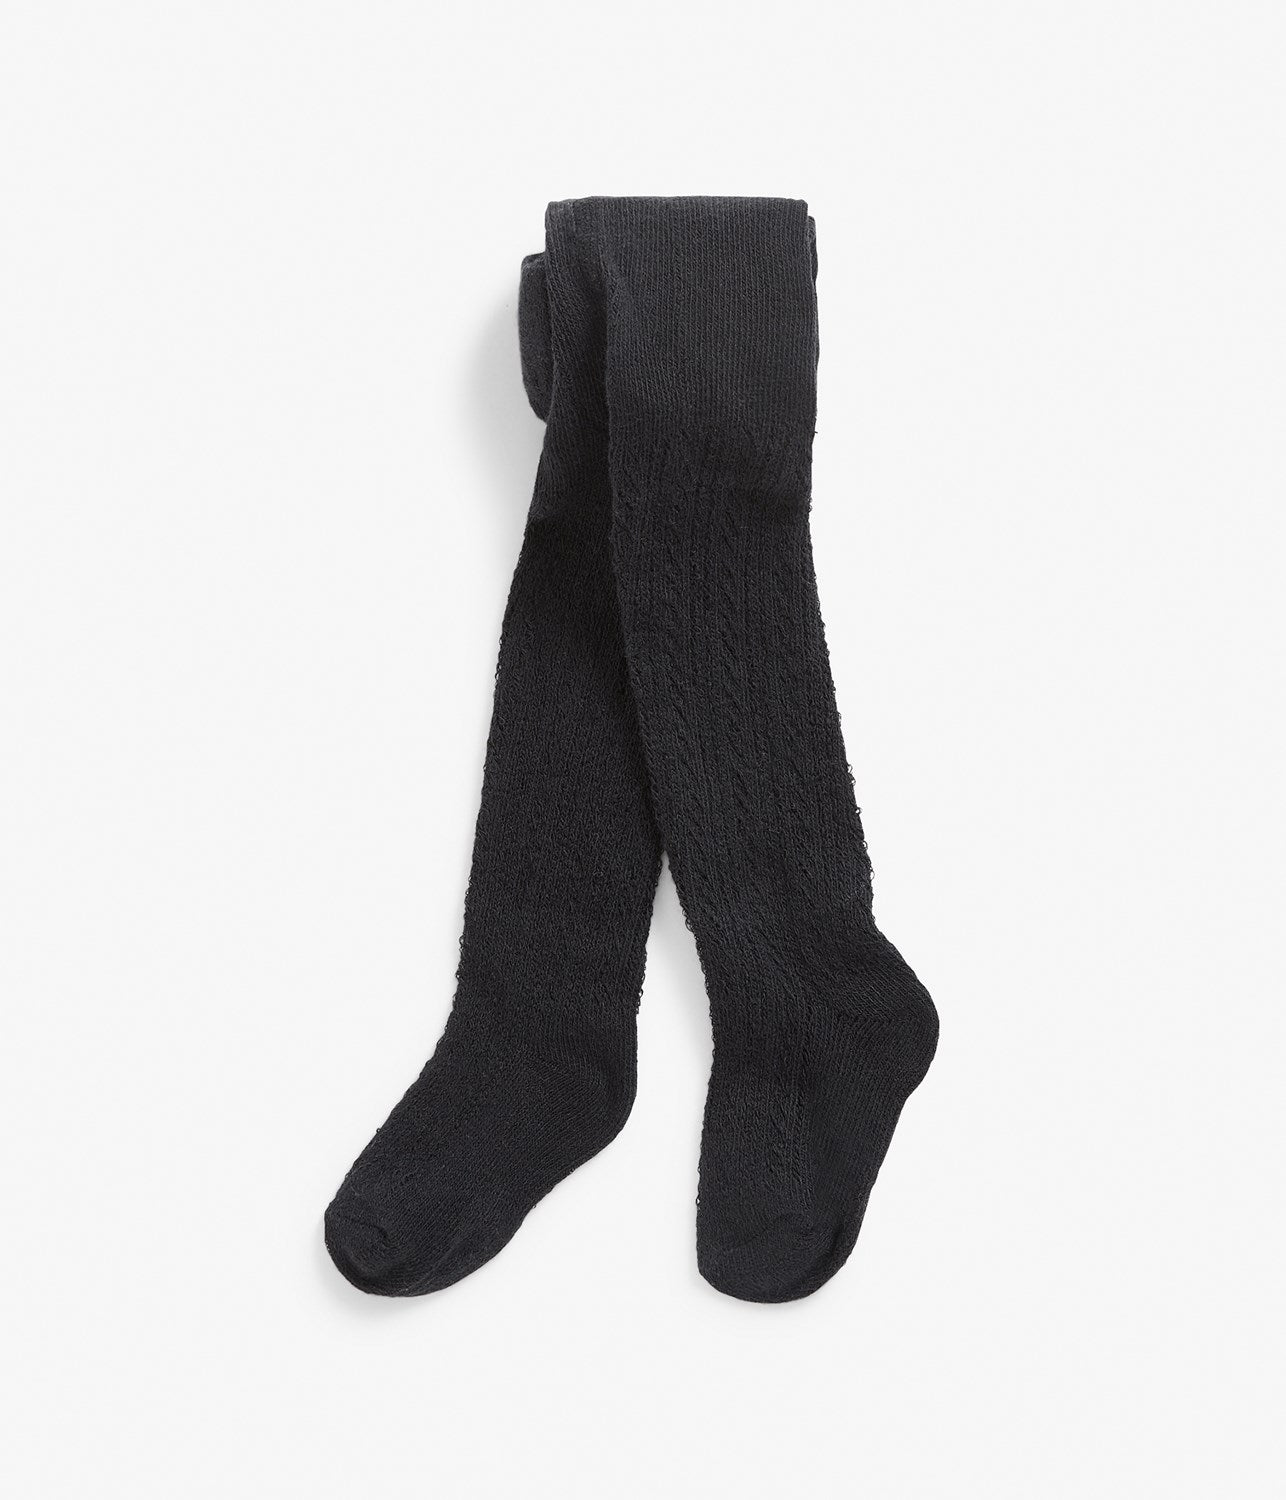 Baby black knitted tights